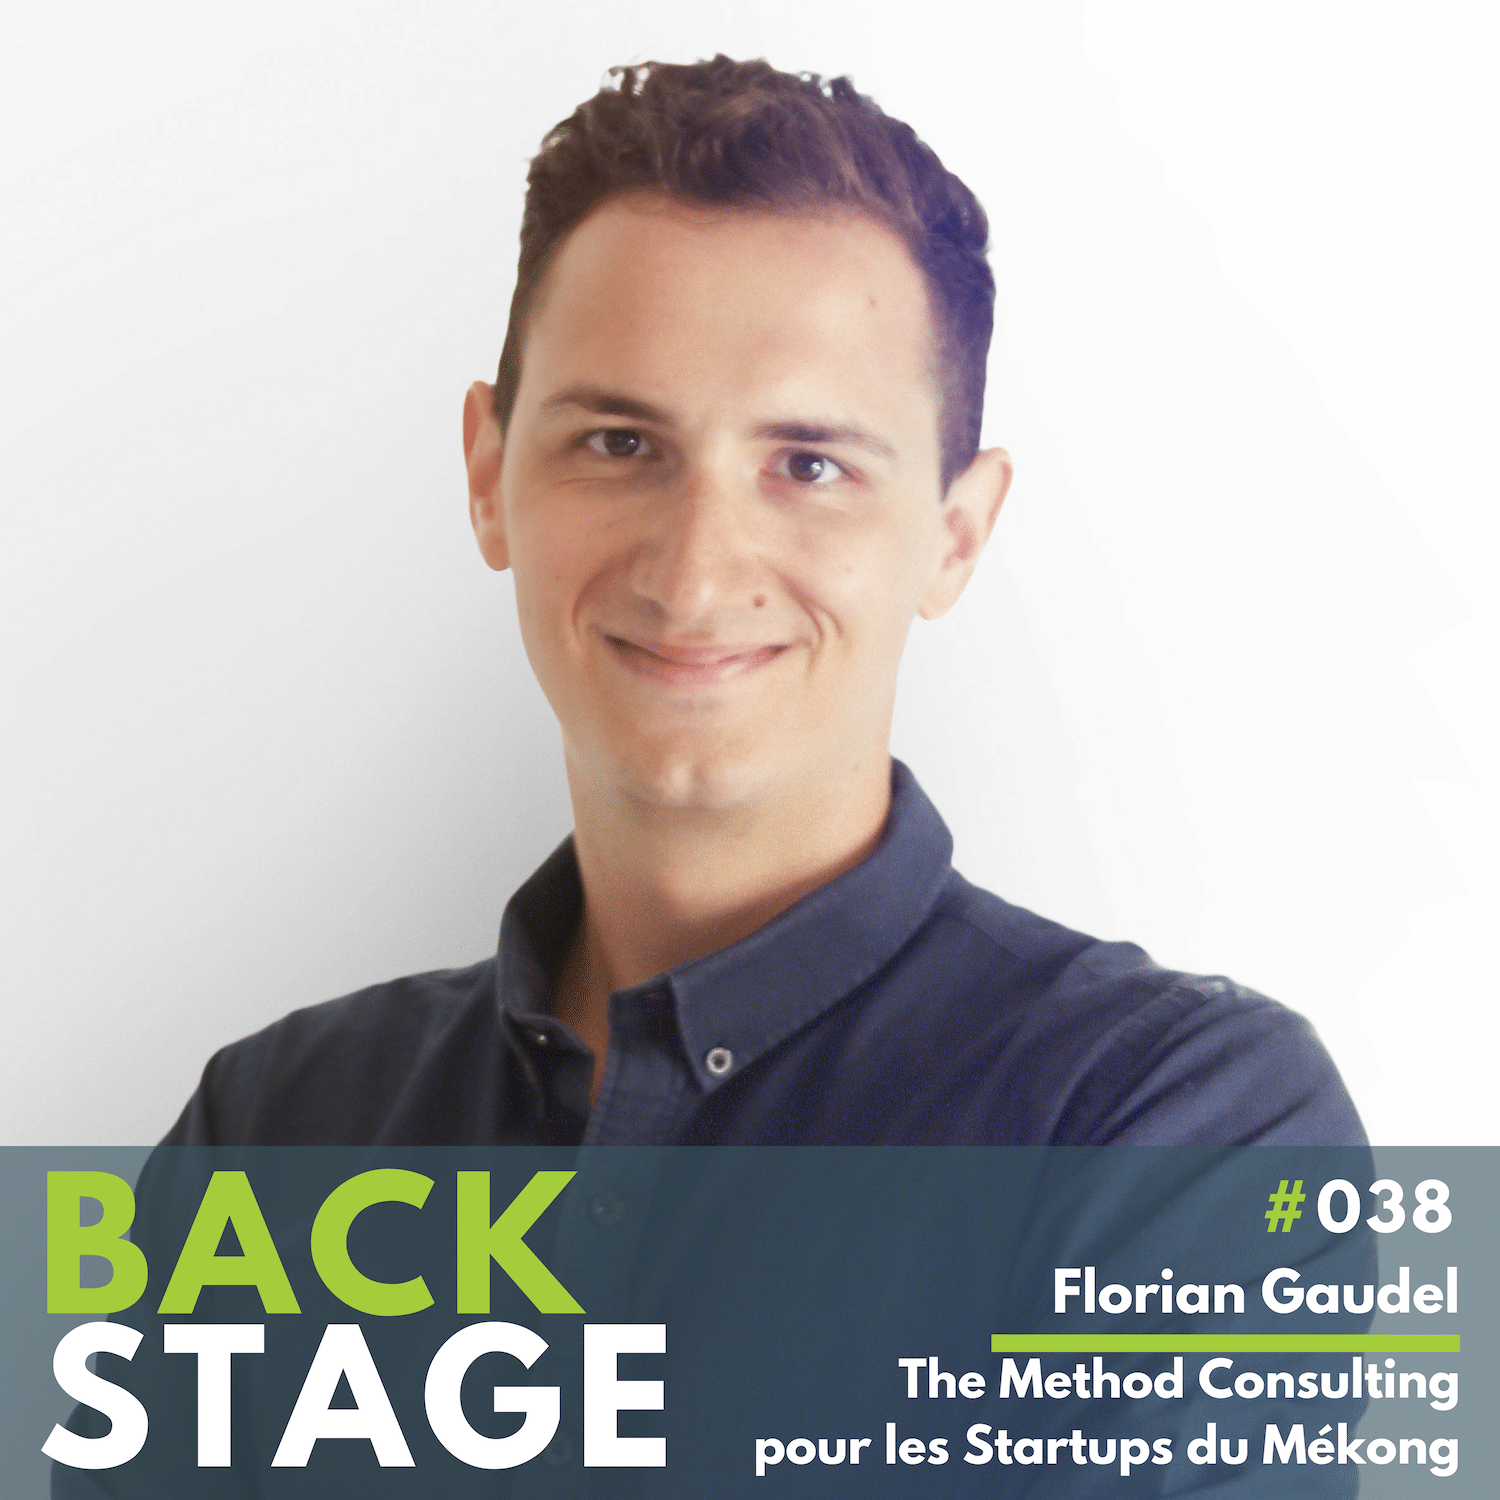 BACKSTAGE #038 - Florian Gaudel, The Method Consulting pour les startups du Cambodge et du Mékong. Podcast